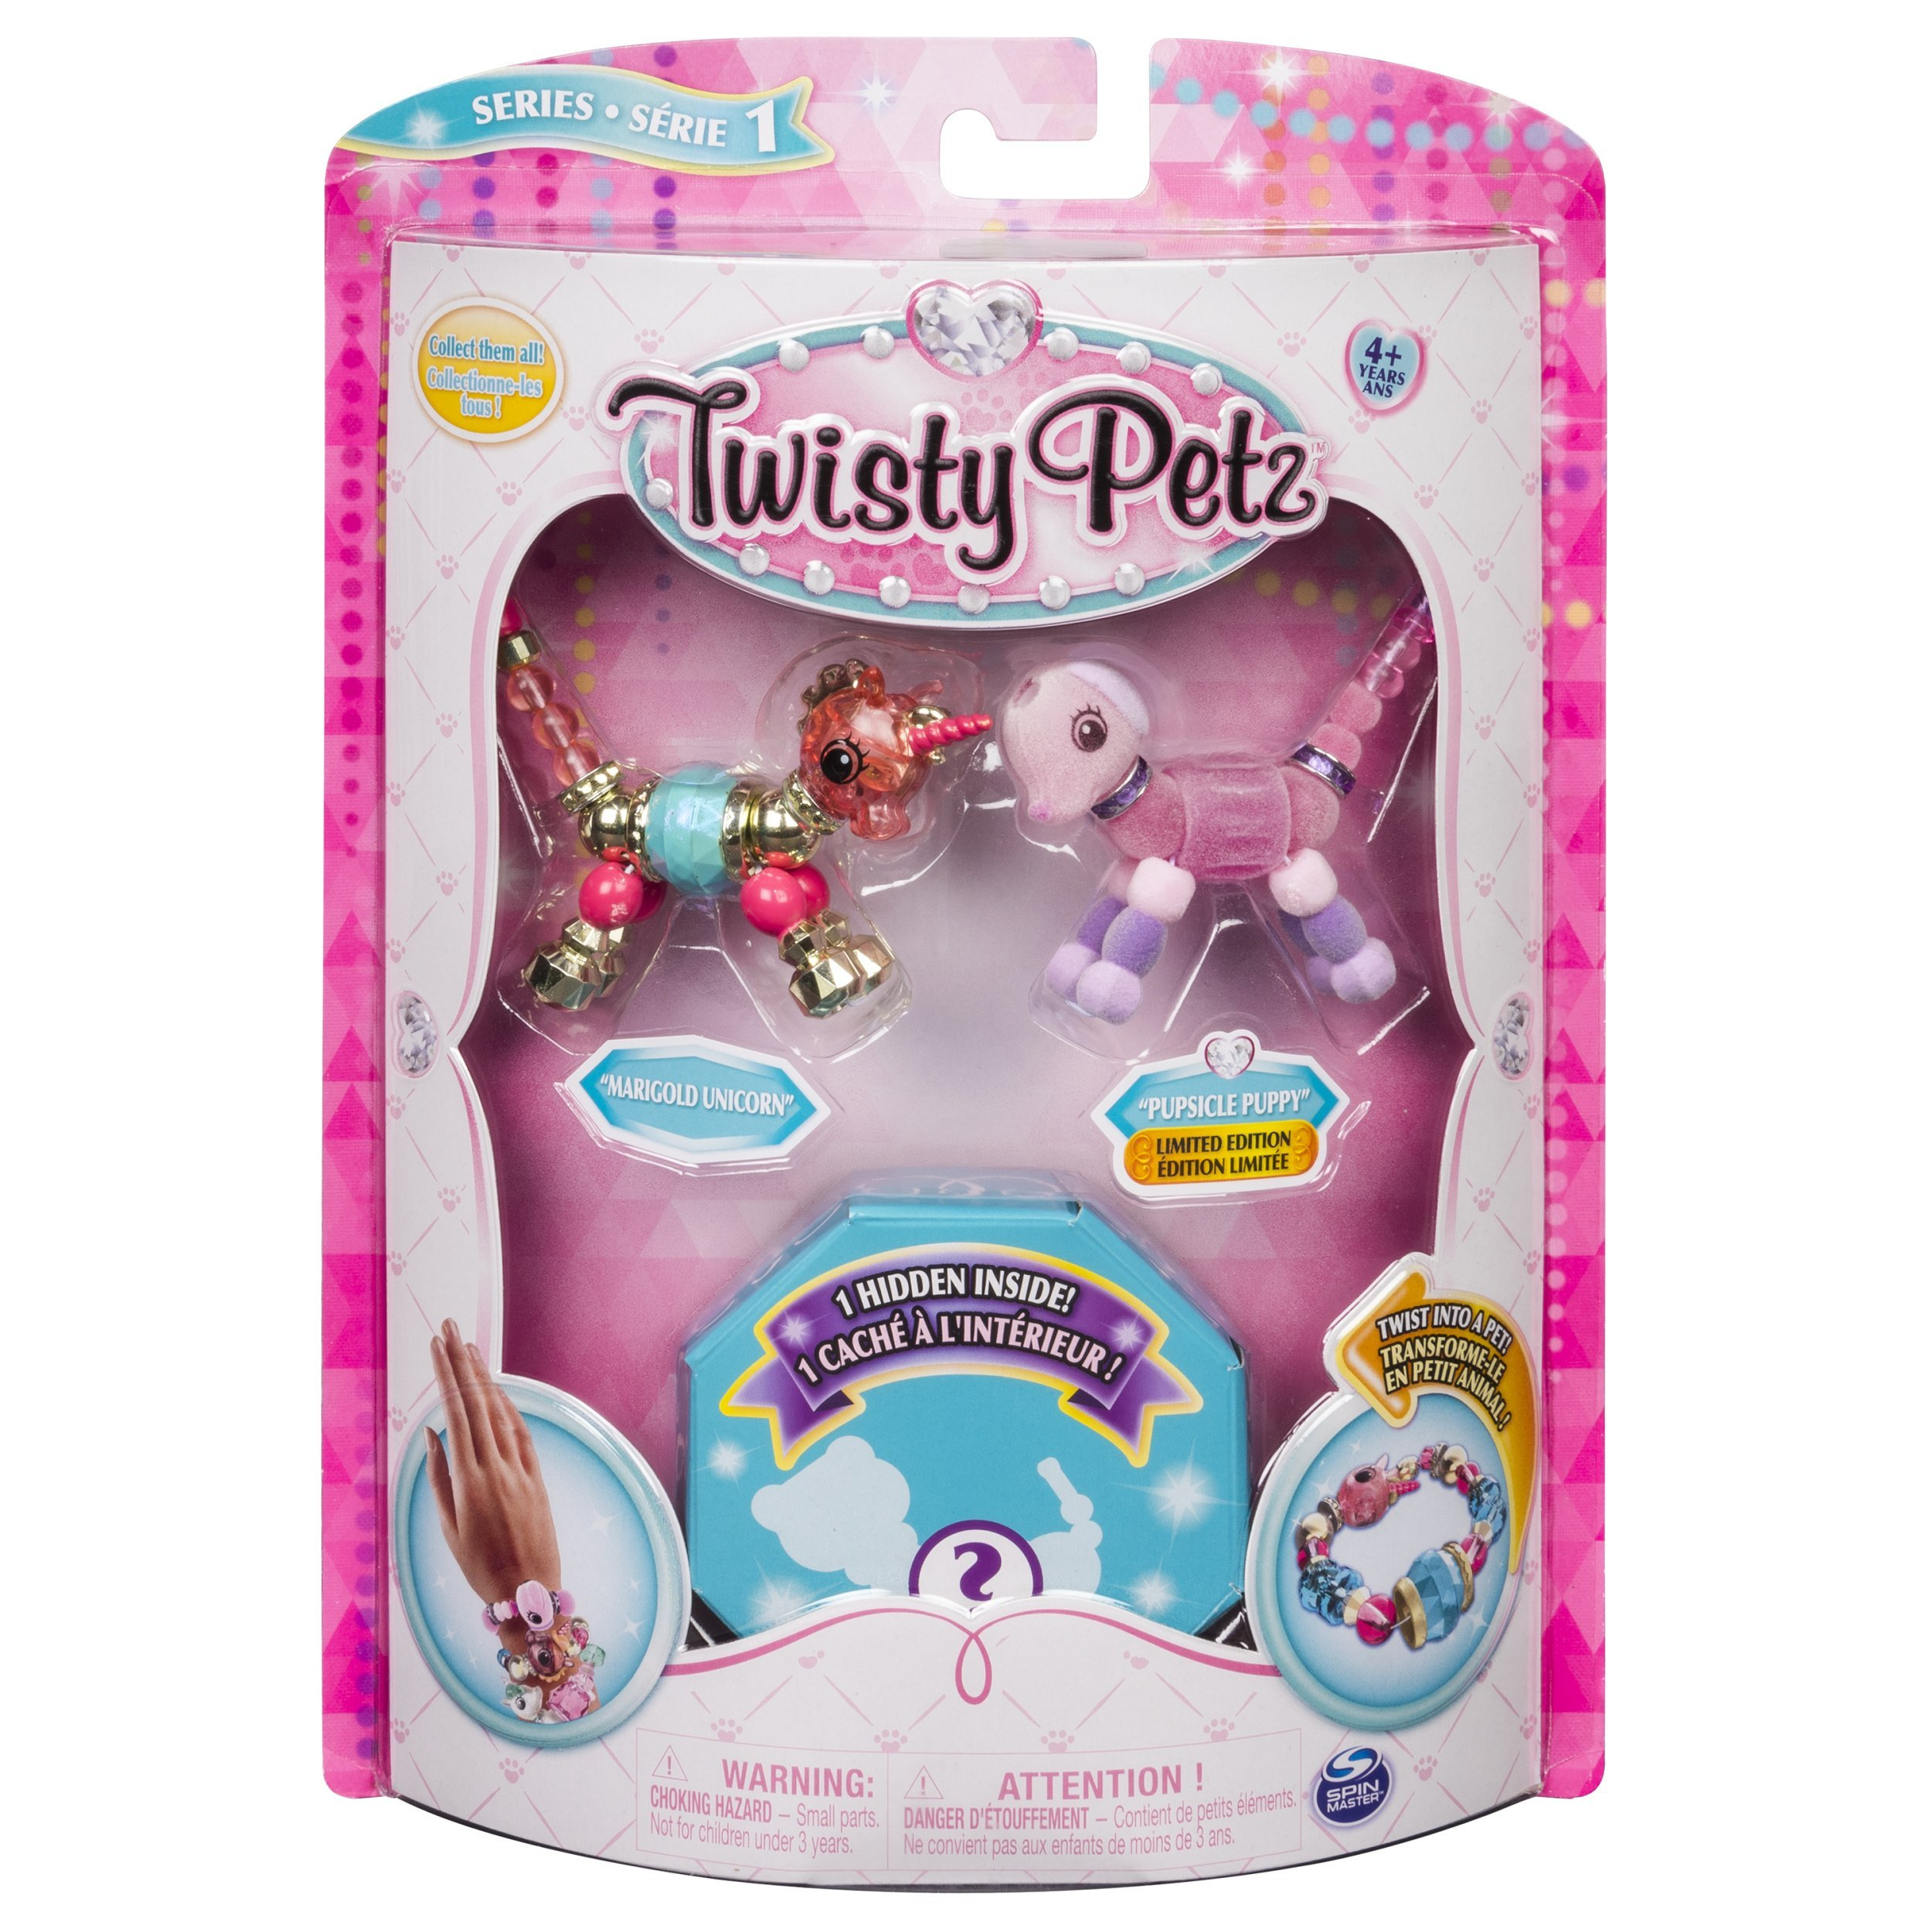 Twisty Petz - 3-Pack - Marigold Unicorn, Pupsicle Puppy and Surprise Collectible Bracelet Set for Kids